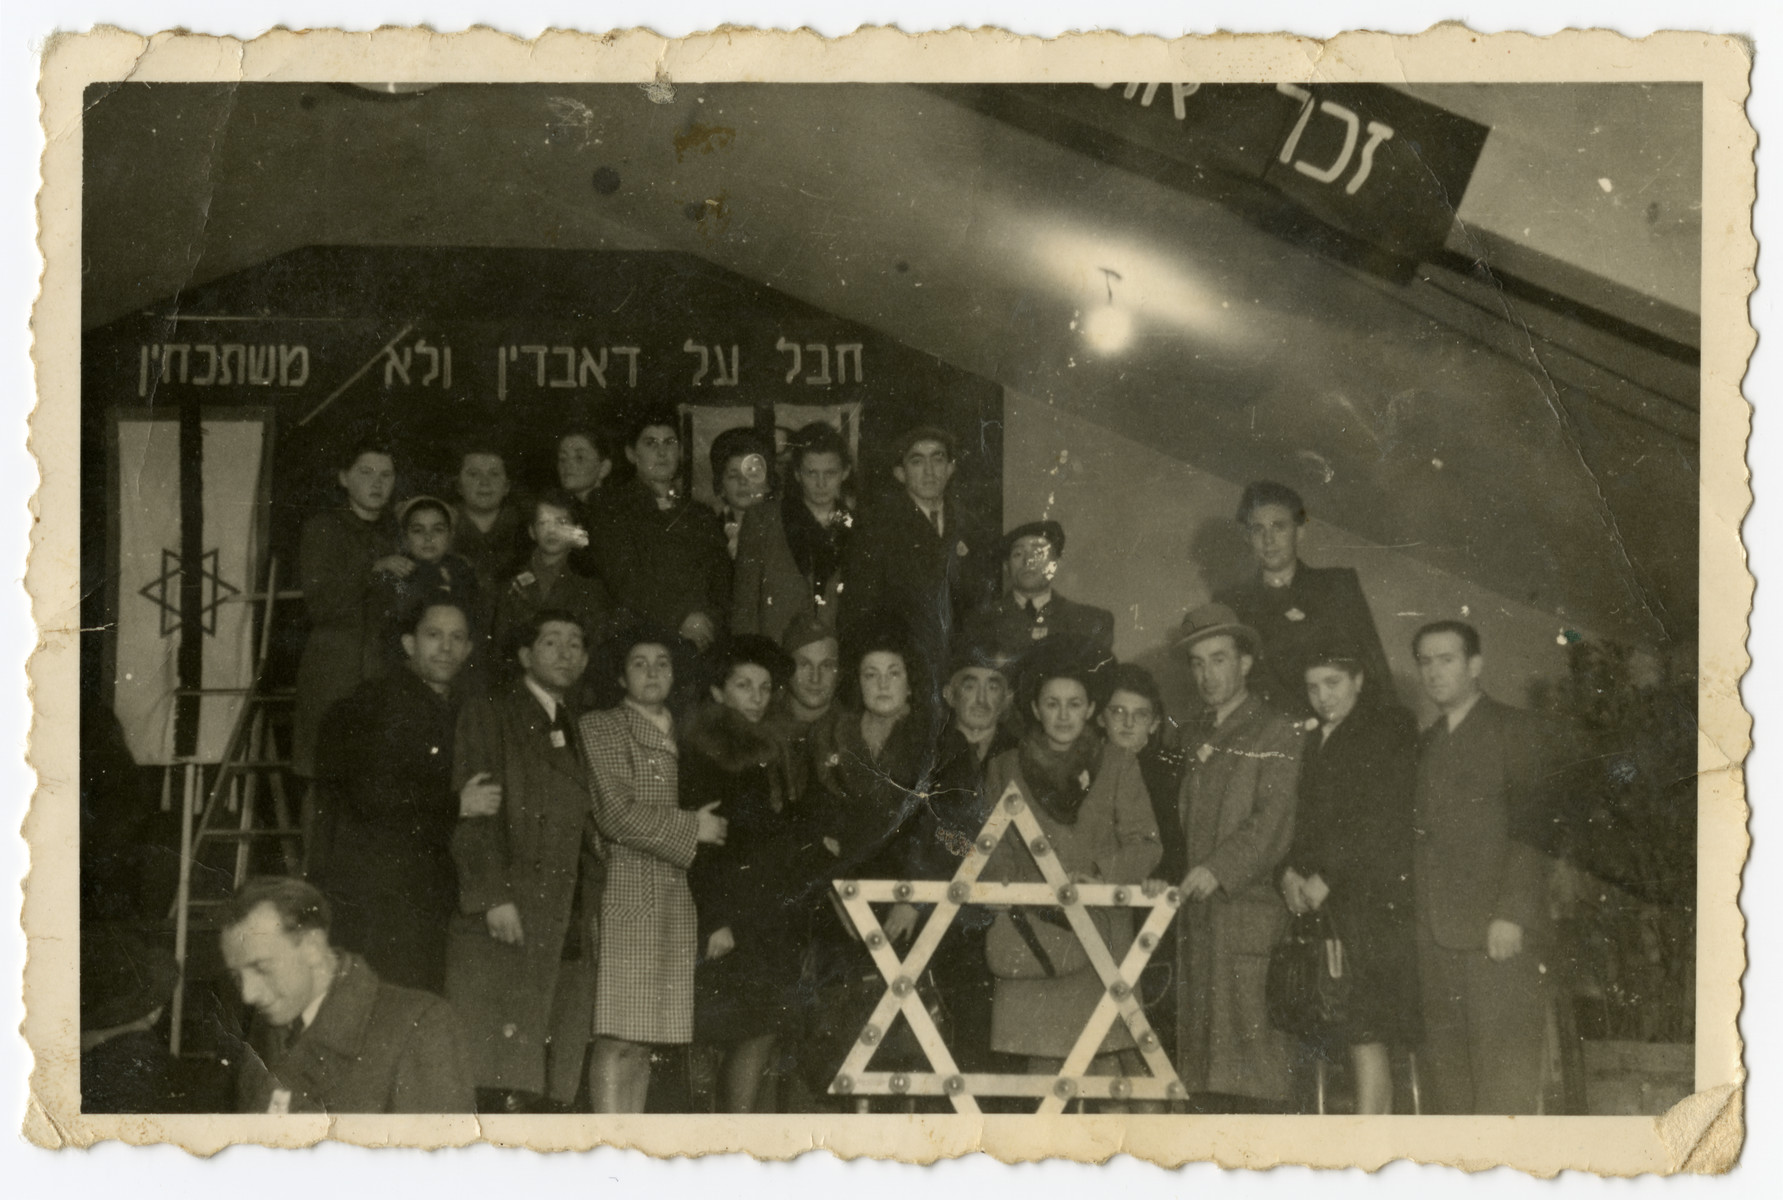 Group portrait of Jewish displaced persons in the Landsberg camp at a memorial service.  They are standing behind a large Star of David and the banner in the back tells them not to forget.